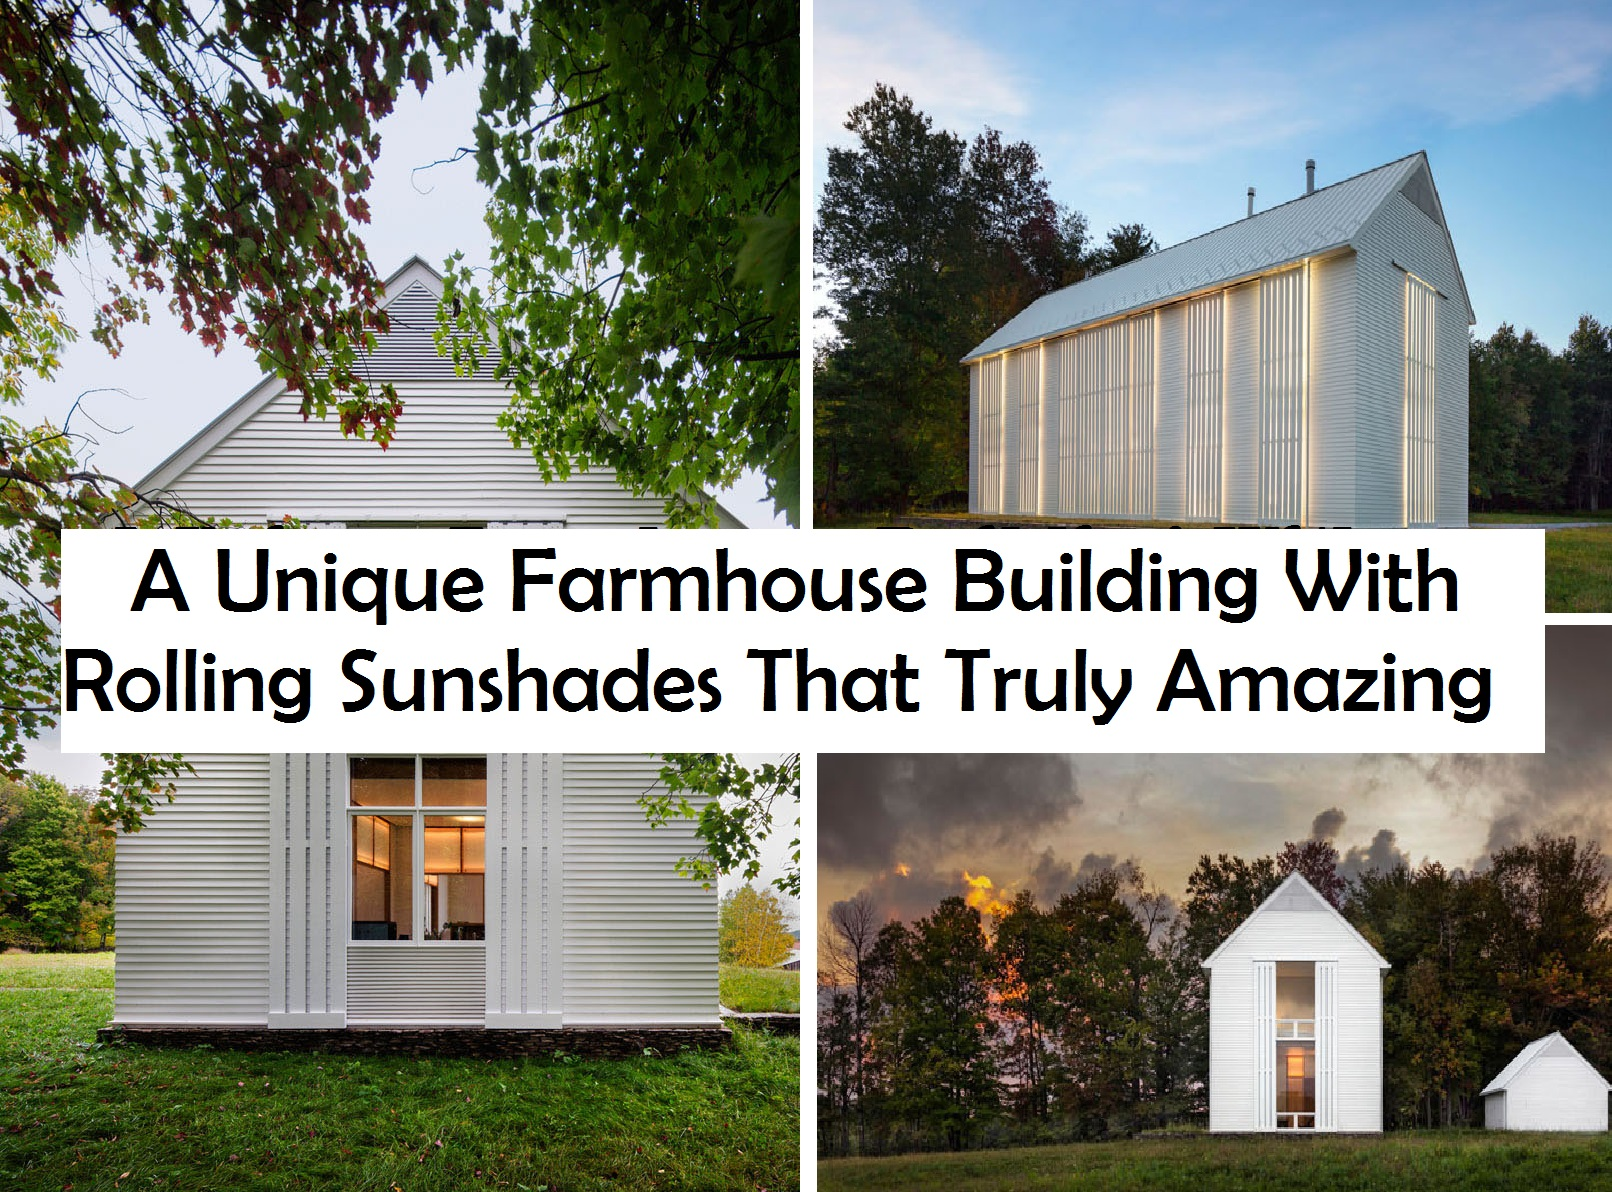 A unique farmhouse building with rolling sunshades that truly amazing